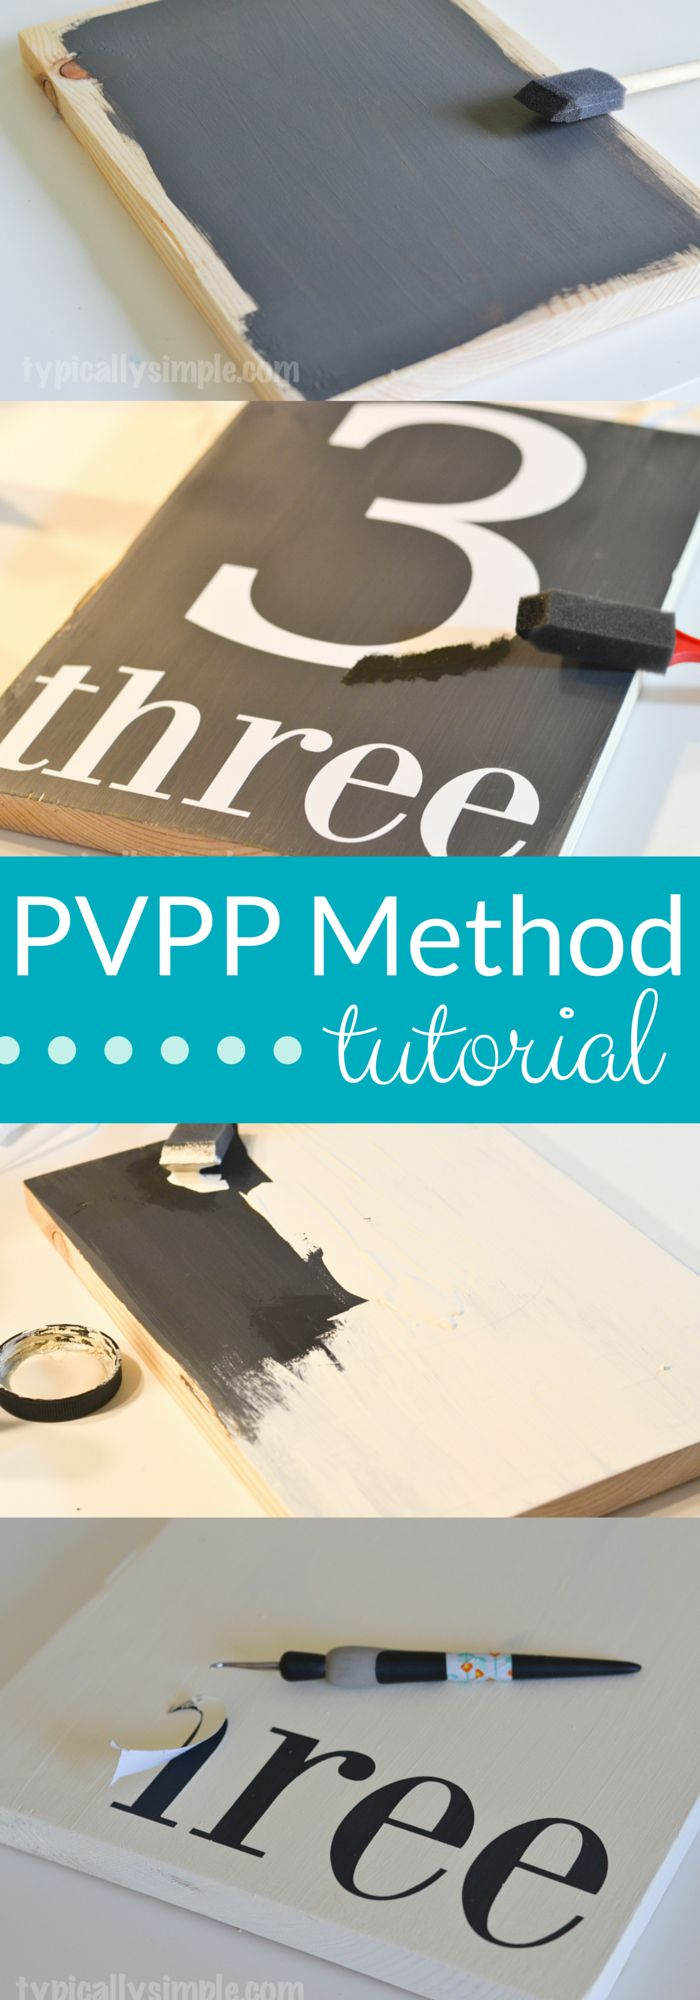 Have you been hearing about the PVPP method? Wondering how it's done? Look no further! Here's a step-by-step tutorial on how to use your Silhouette to create a hand painted sign using the Paint, Vinyl, Paint, Peel method. | TypicallySimple.com